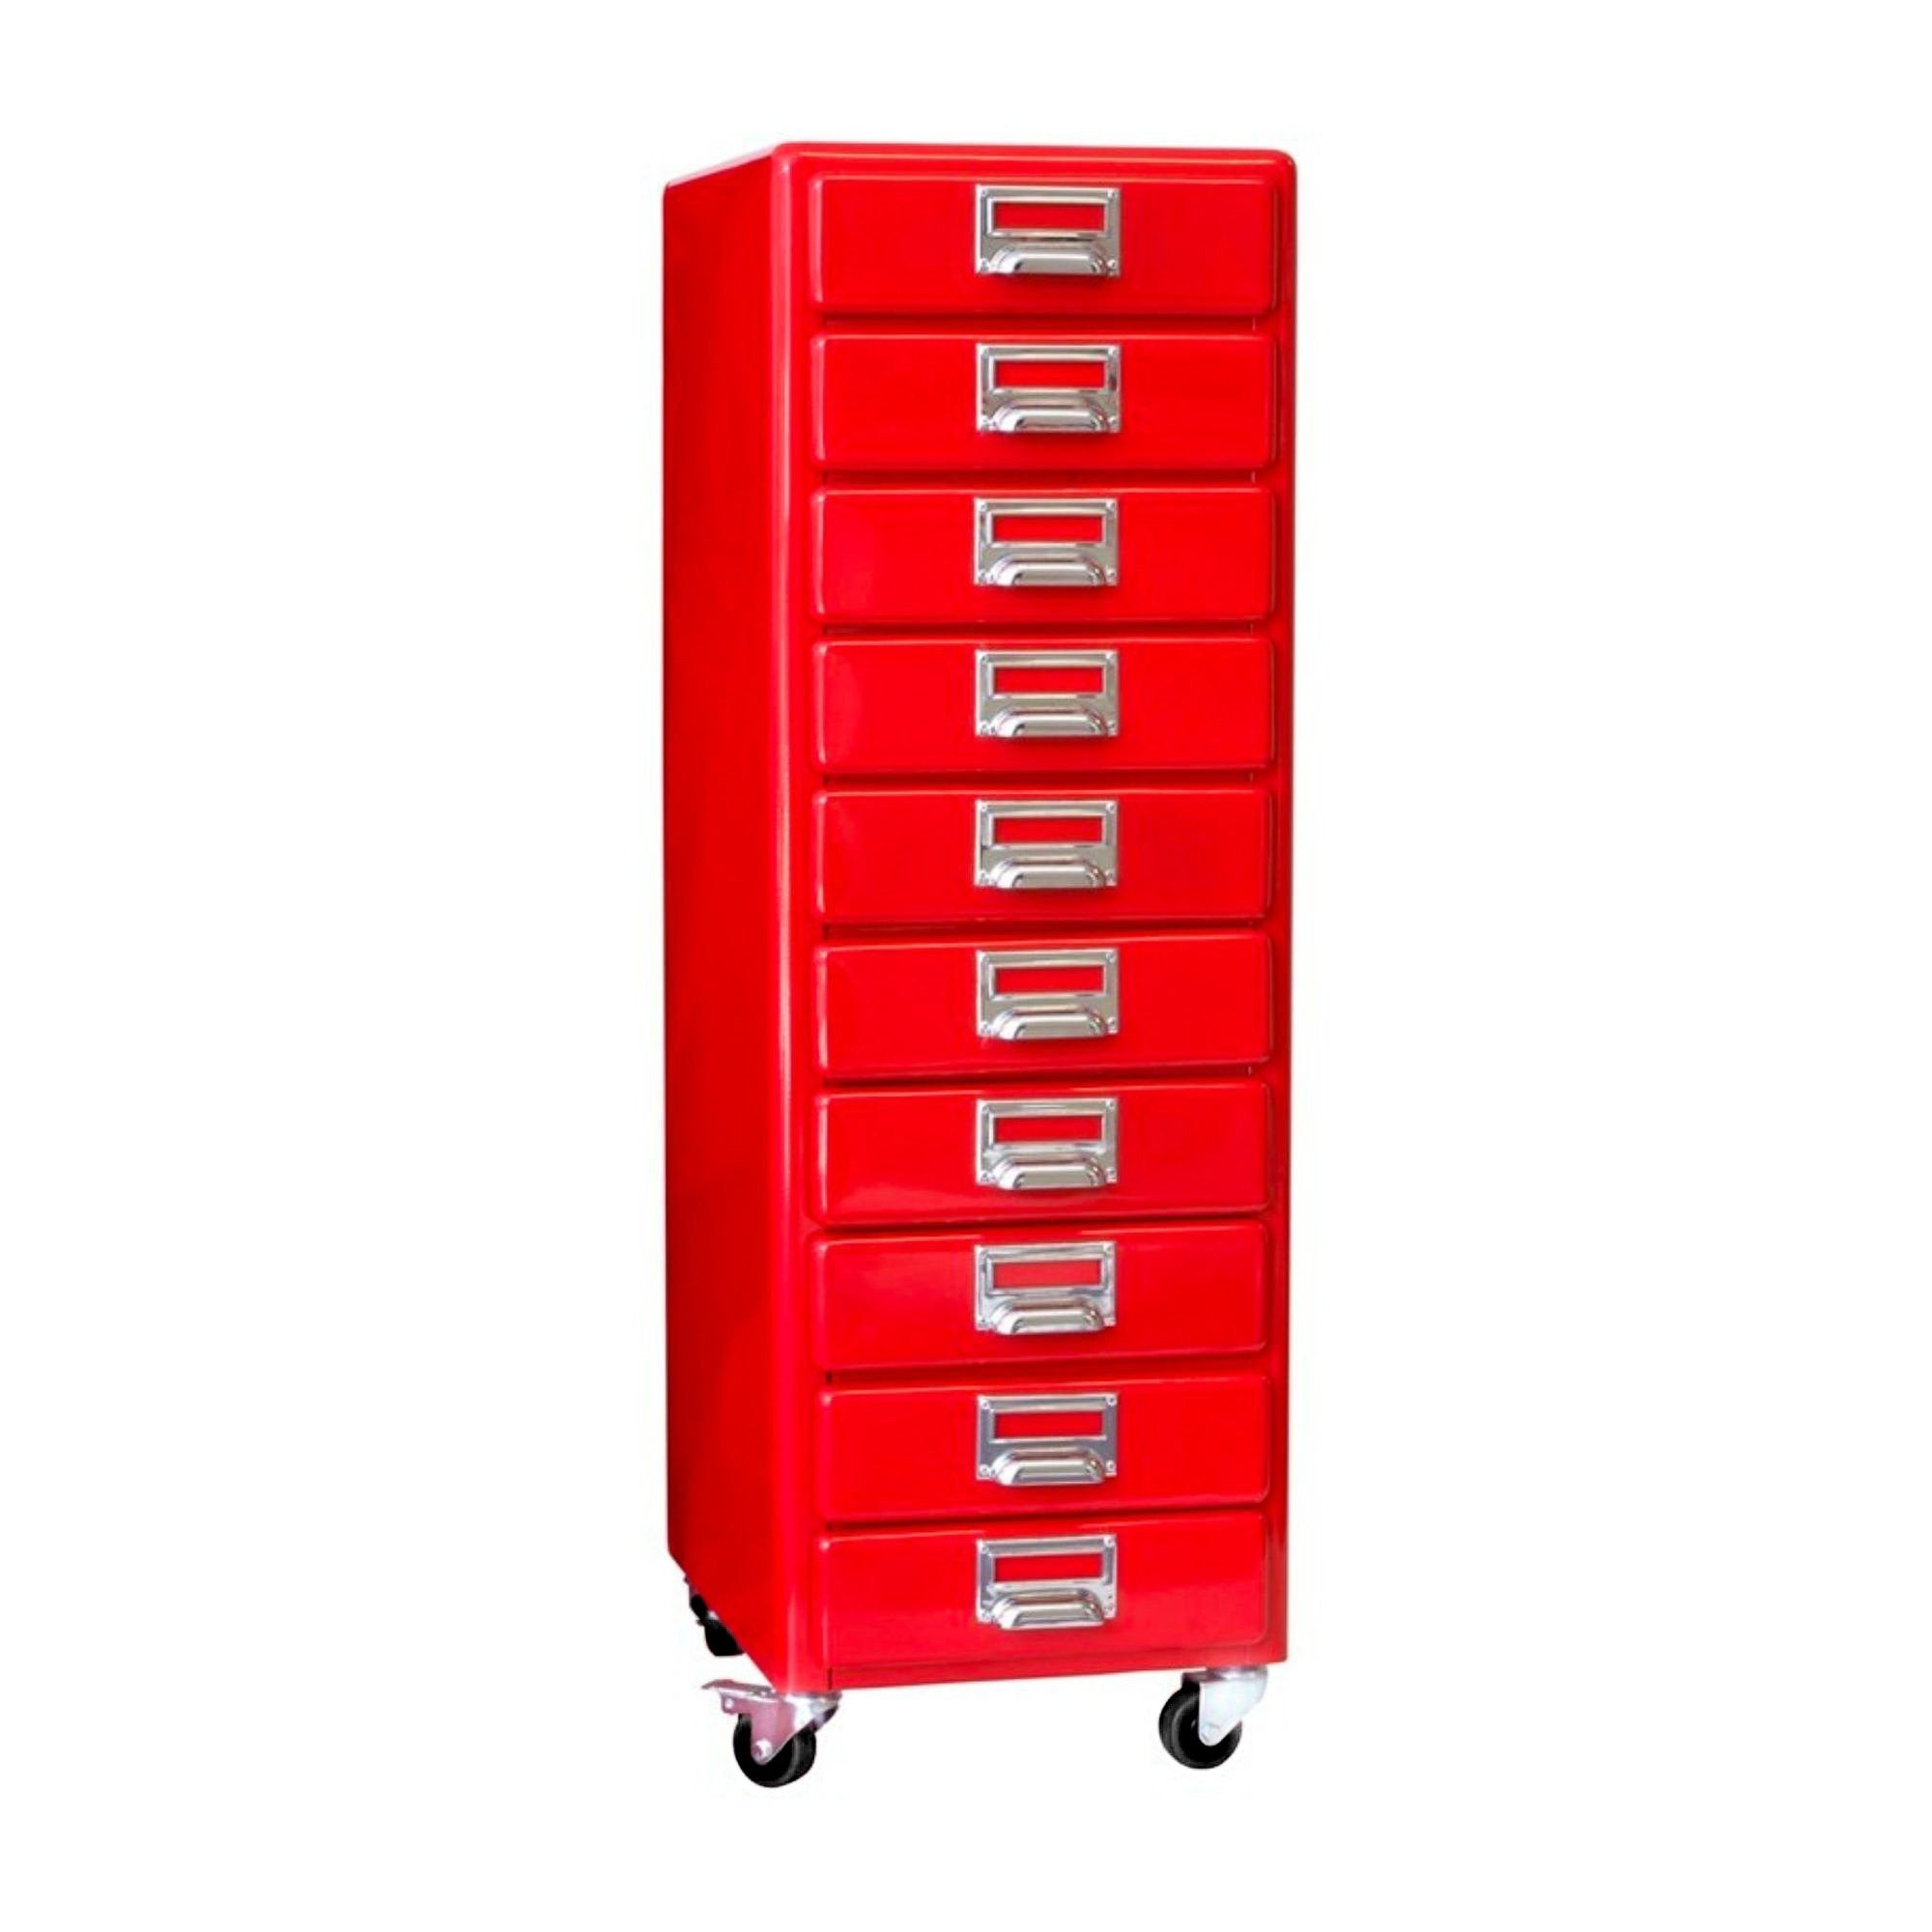 Dulton 10 Drawers Chest, red